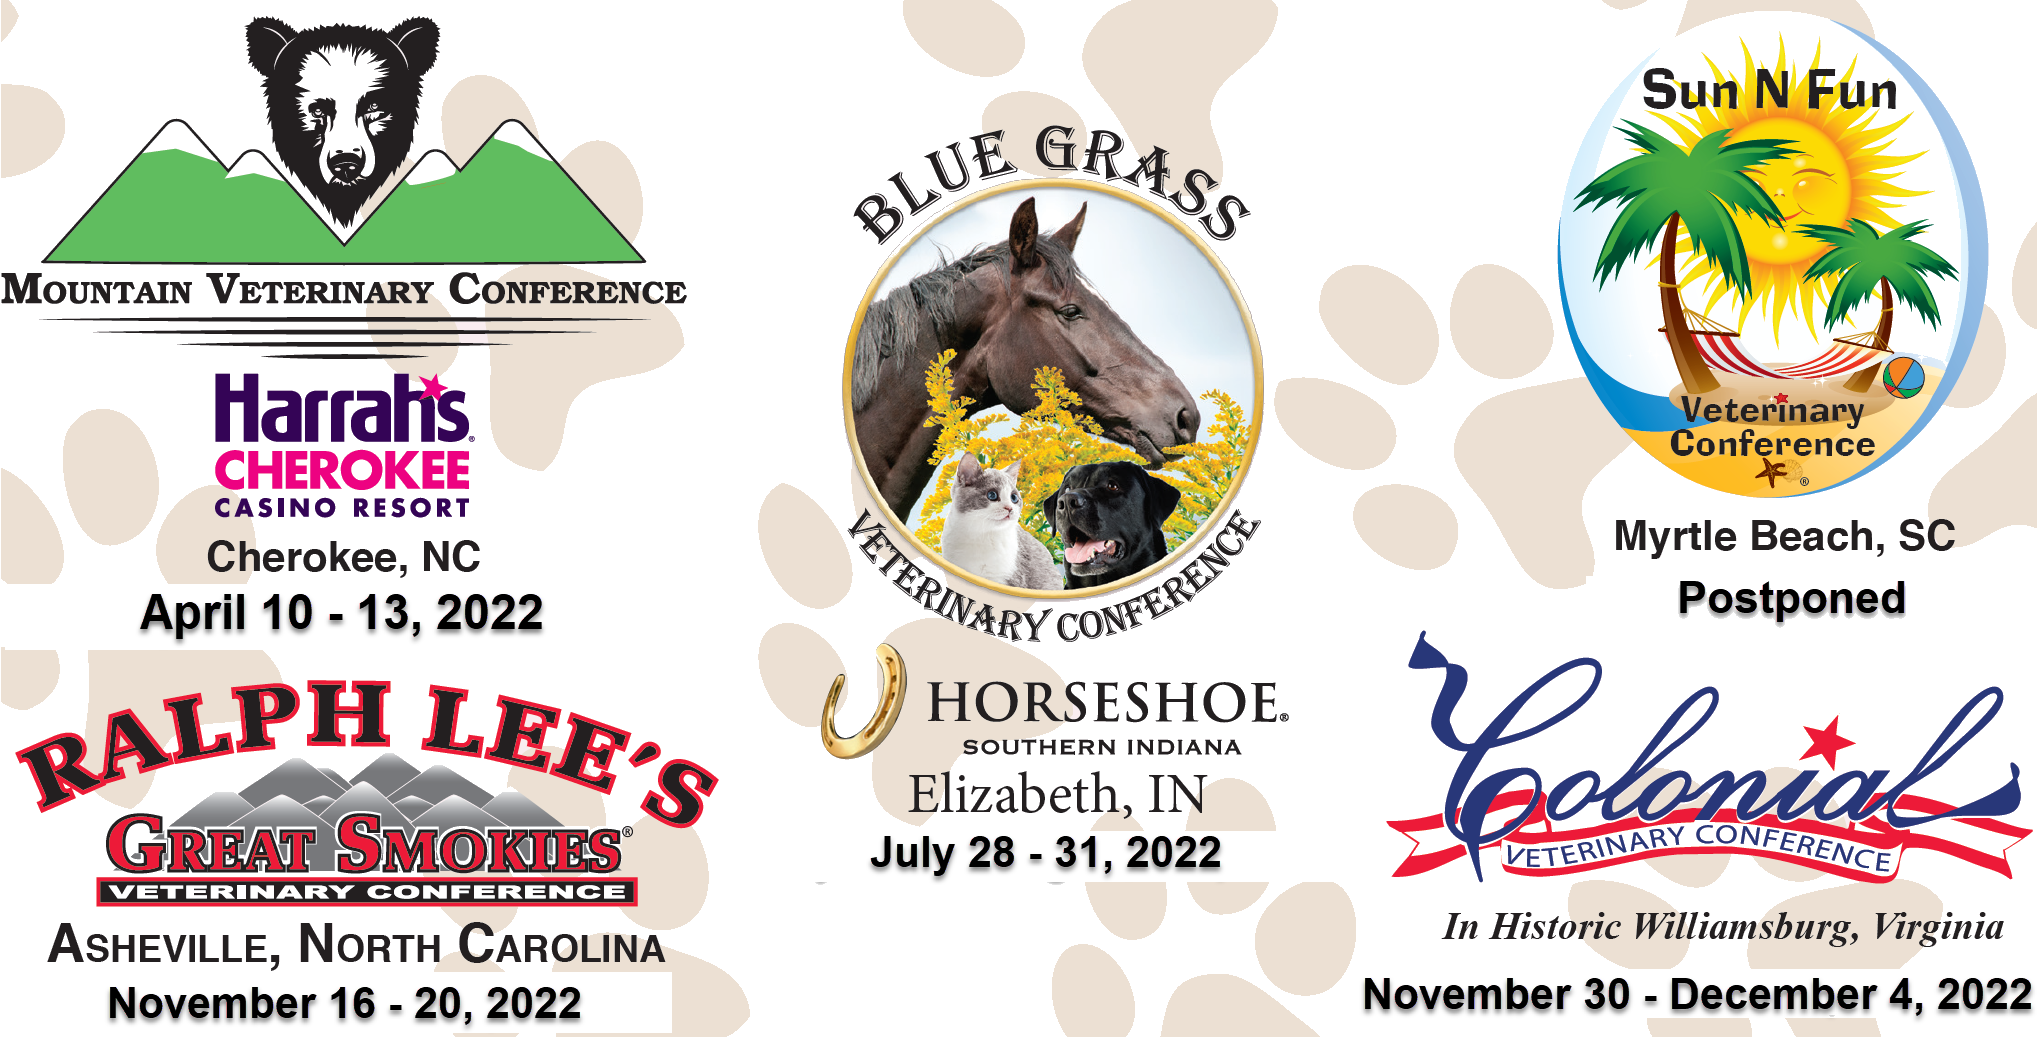 Our Conferences for 2020: Mountian Veterinary Conference, Sun N Fun Veterinary Conference, Bluegrass Veterinary Conference, Ralph Lee's Great Smokies Veterinary Conference and Colonial Veterinar Conference